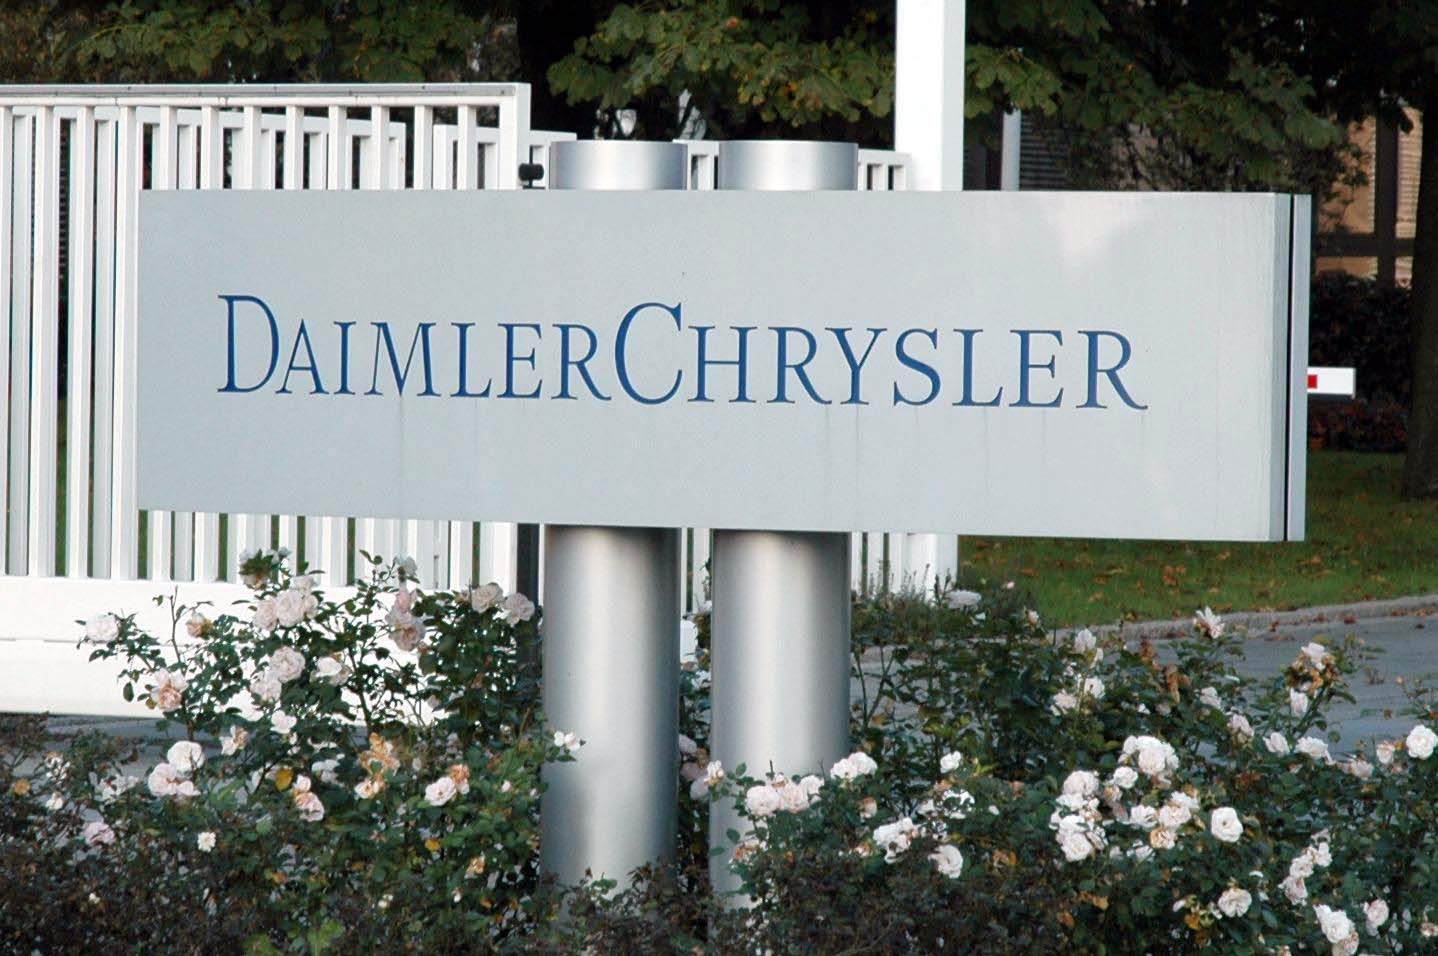 chrysler corporation negotiations between daimler and chrysler The merger between chrysler and daimler-benz: what it means for workers by editorial board 8 may 1998 the takeover of chrysler corporation by daimler-benz in a $38 billion stock deal is a powerful demonstration of the globalization of the world economy.